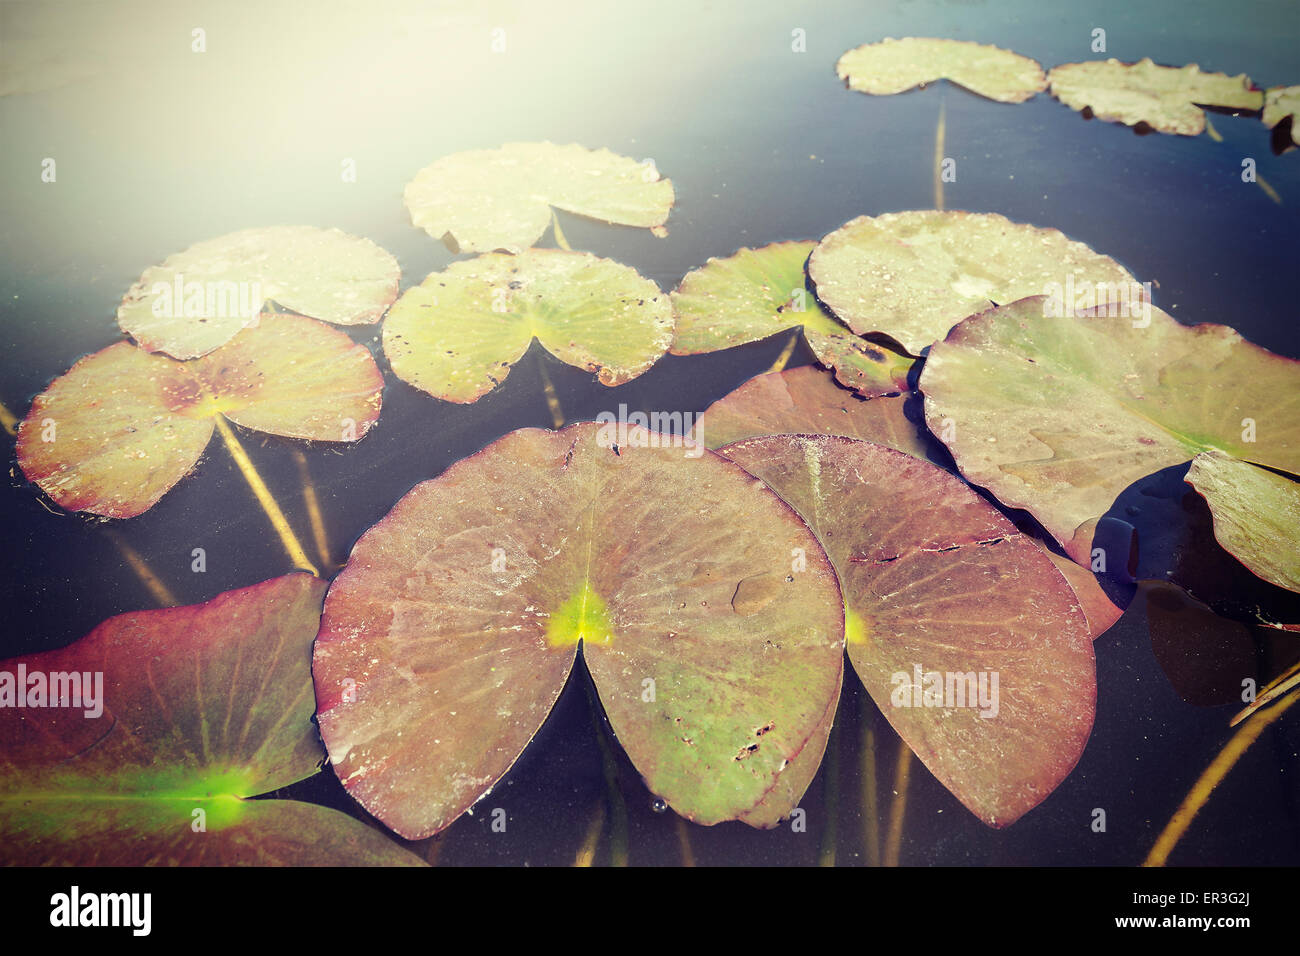 Vintage toned water lilies, nature background, shallow depth of field. - Stock Image